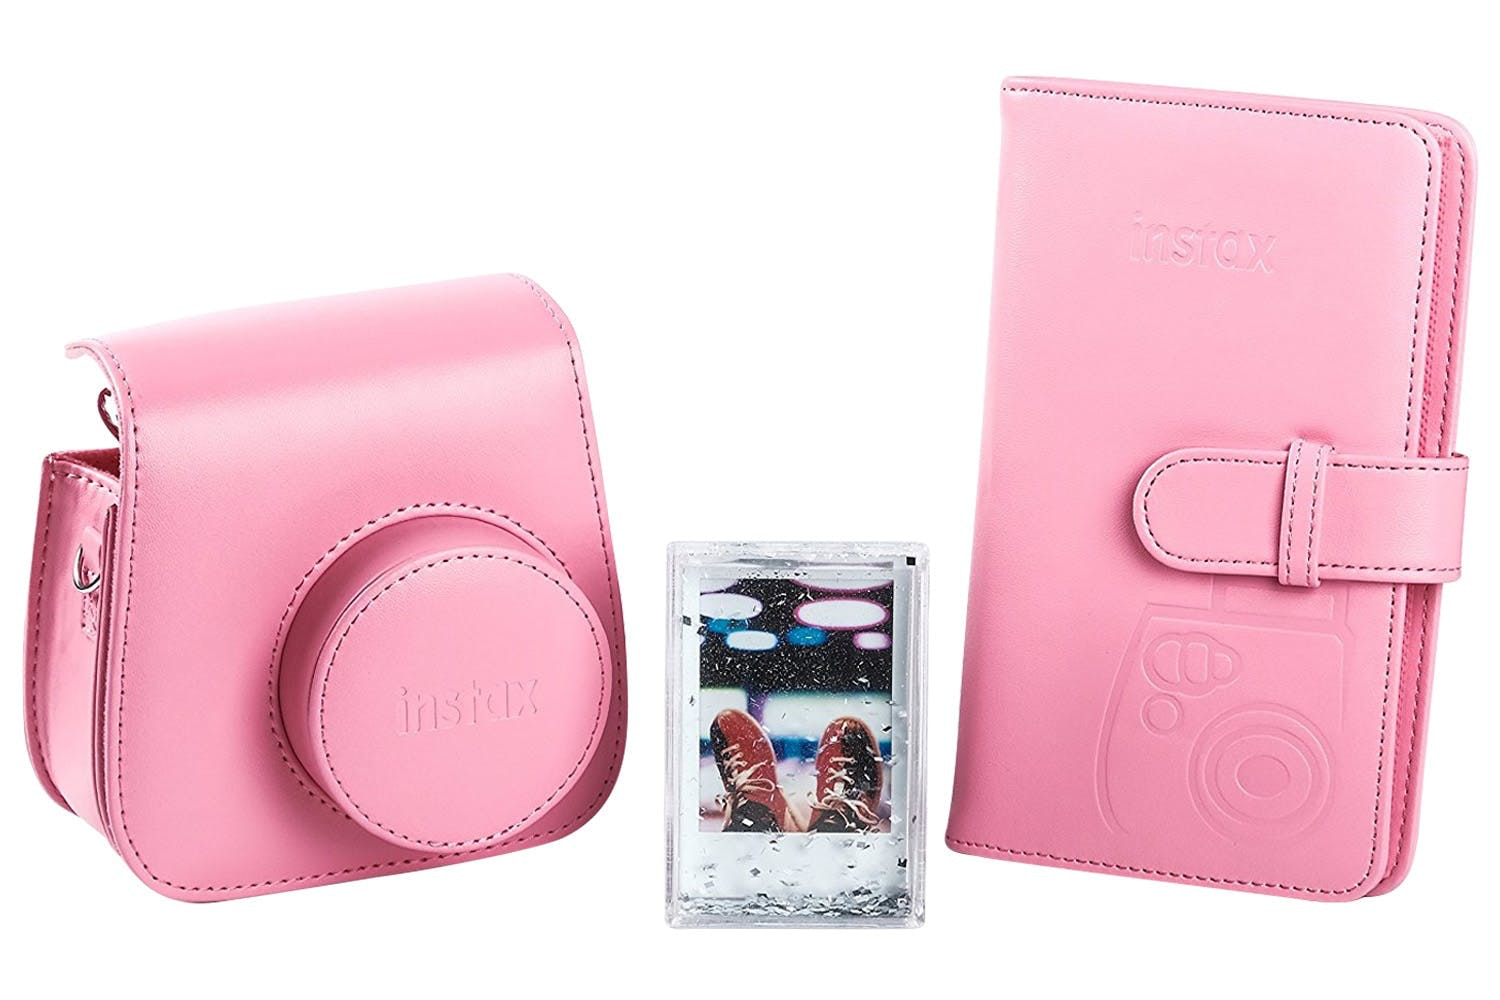 Fujifilm Instax Mini 9 Accessory Kit | Flamingo Pink